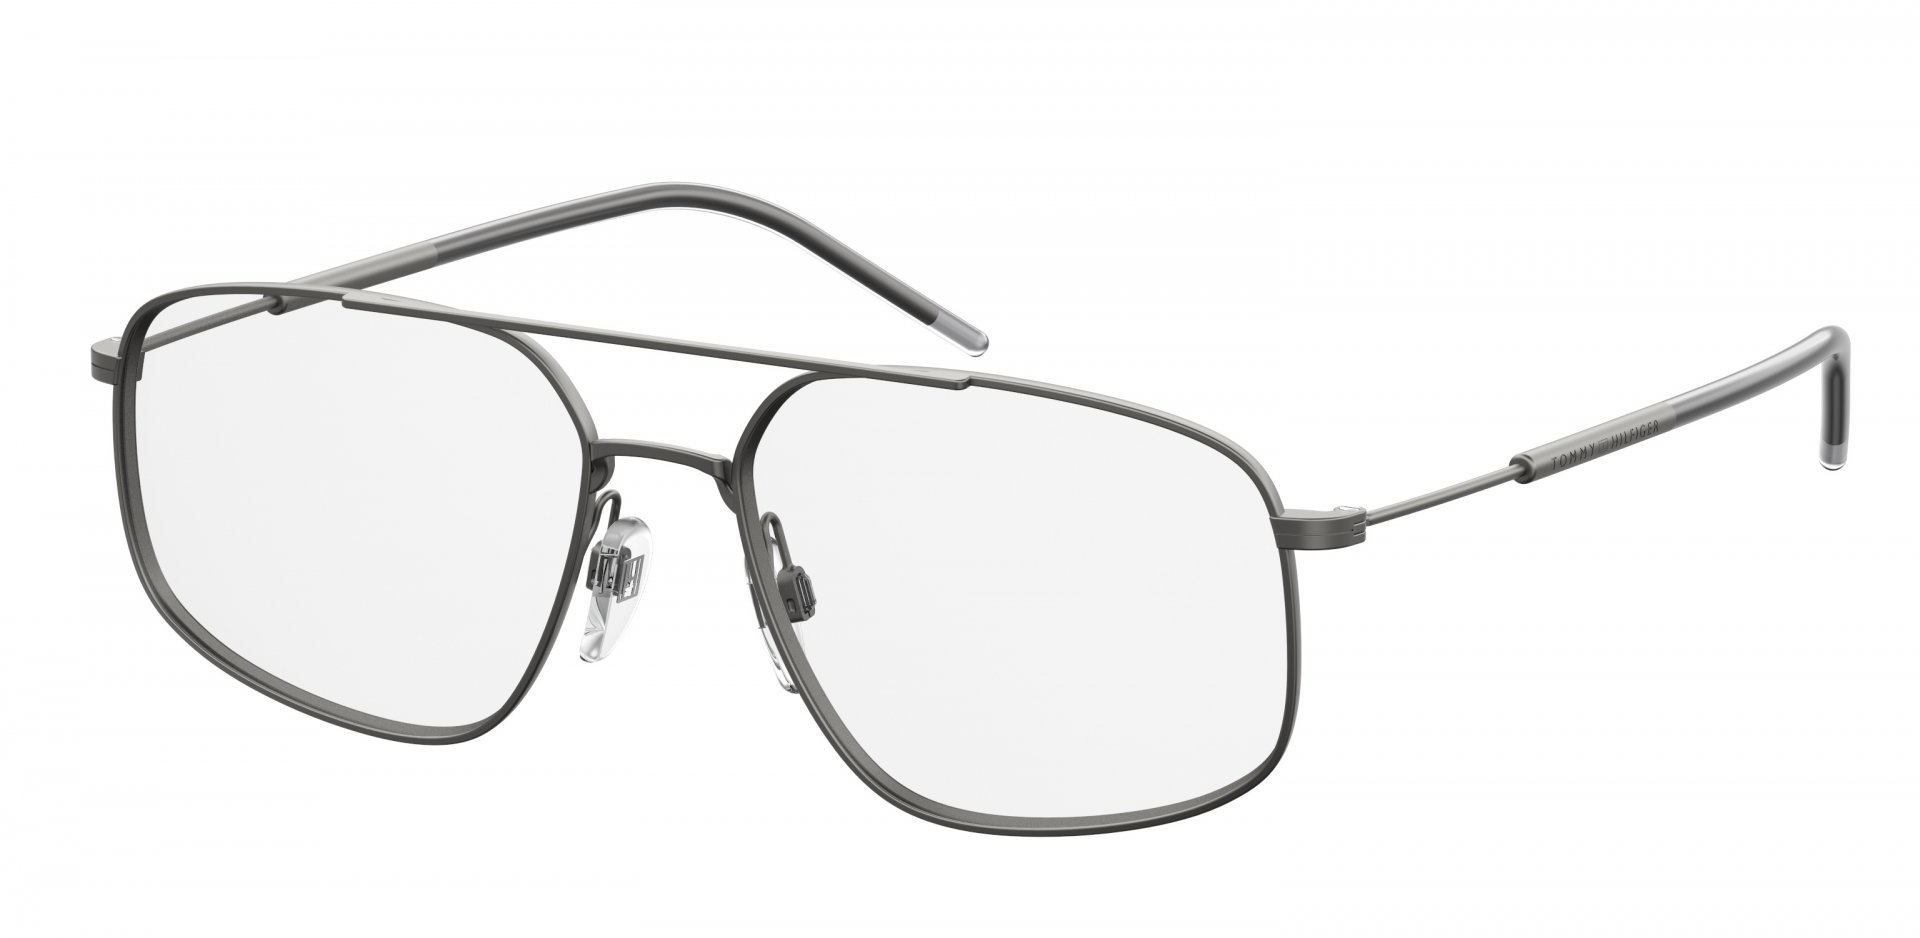 9ba1d650 The unisex TH 1632 glasses frame, with slightly rounded structure, in  metal, with single nosepiece and slim arms featuring an engraving of the  iconic TH ...